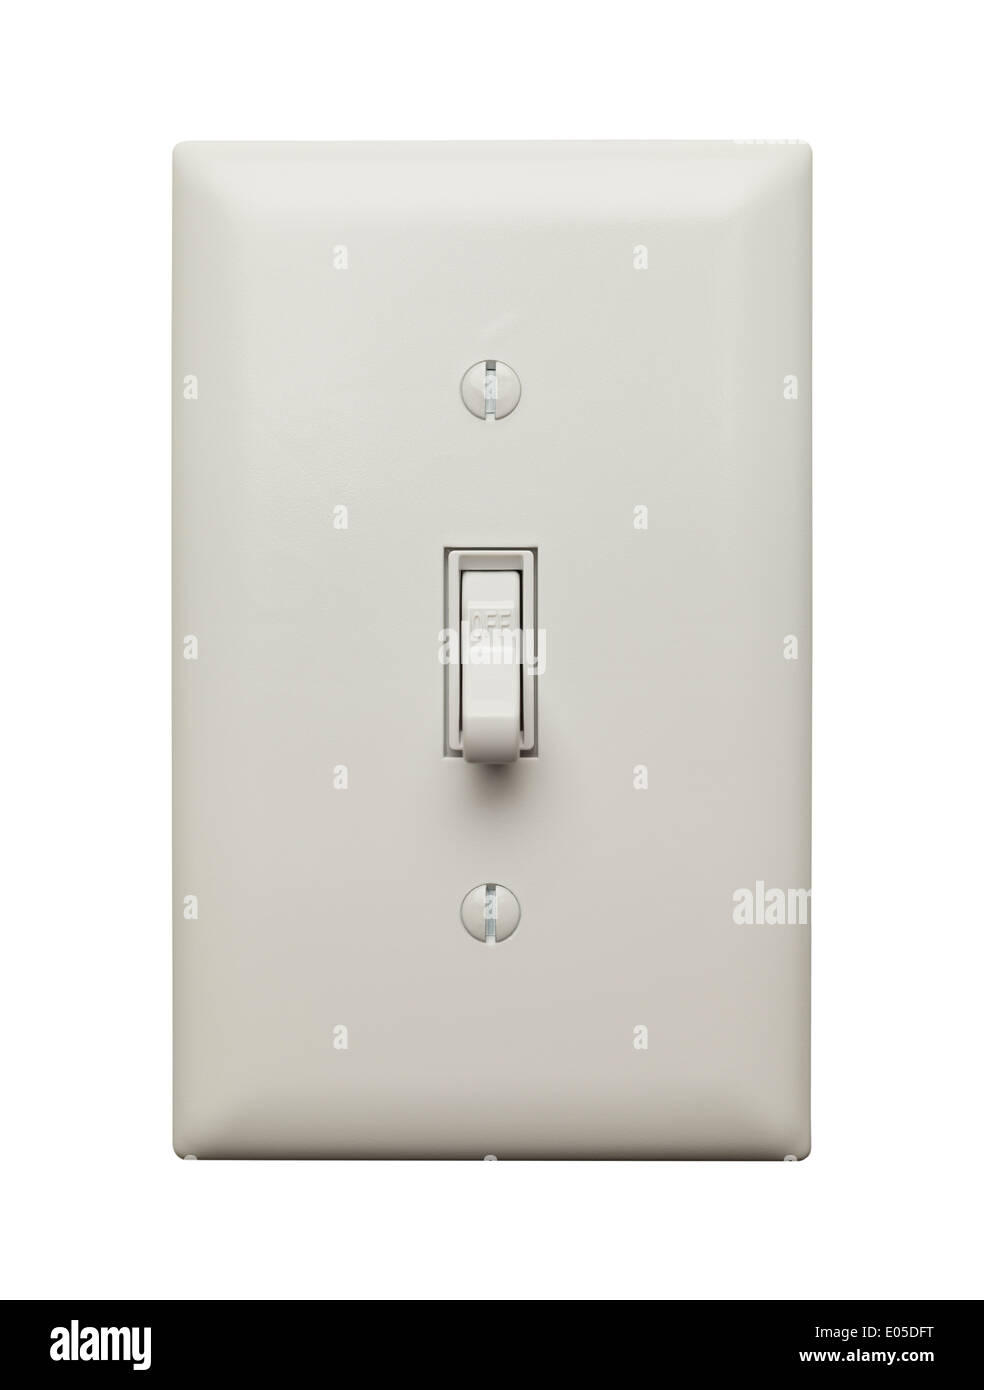 Lichtschalter in der Ausschaltstellung, Isolated on White Background ...